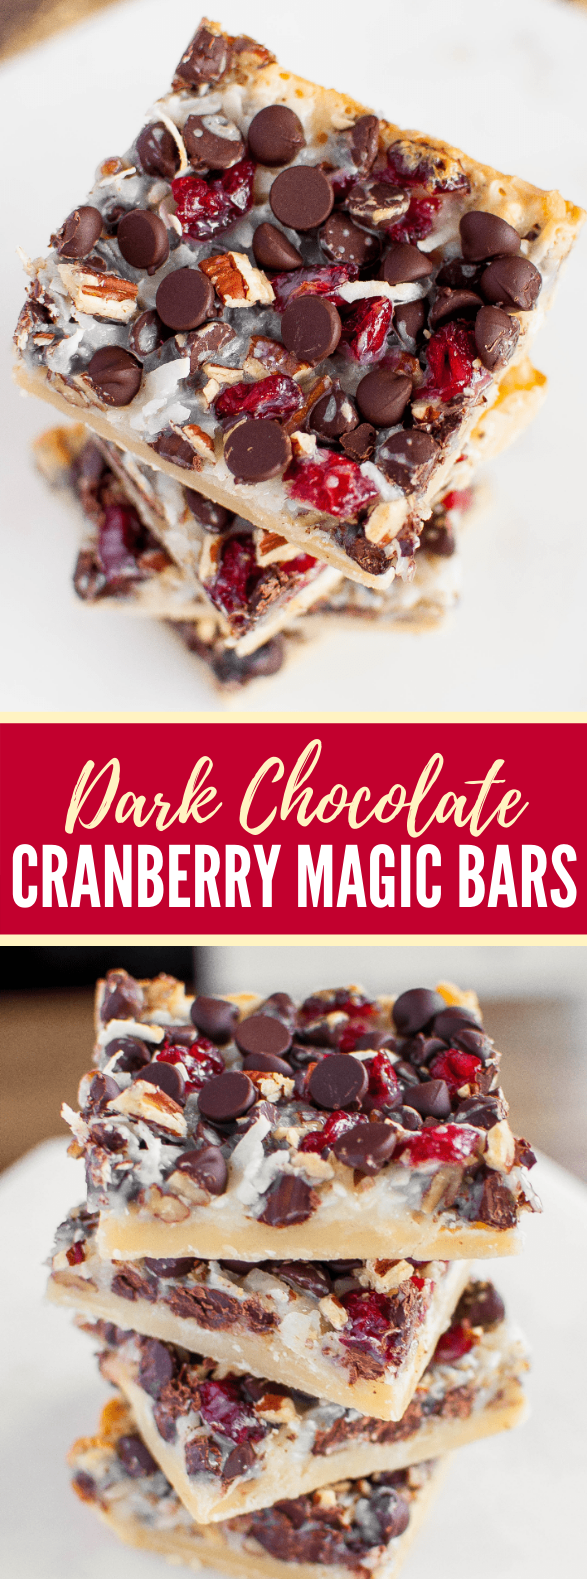 DARK CHOCOLATE CRANBERRY MAGIC BARS #desserts #holidayrecipe